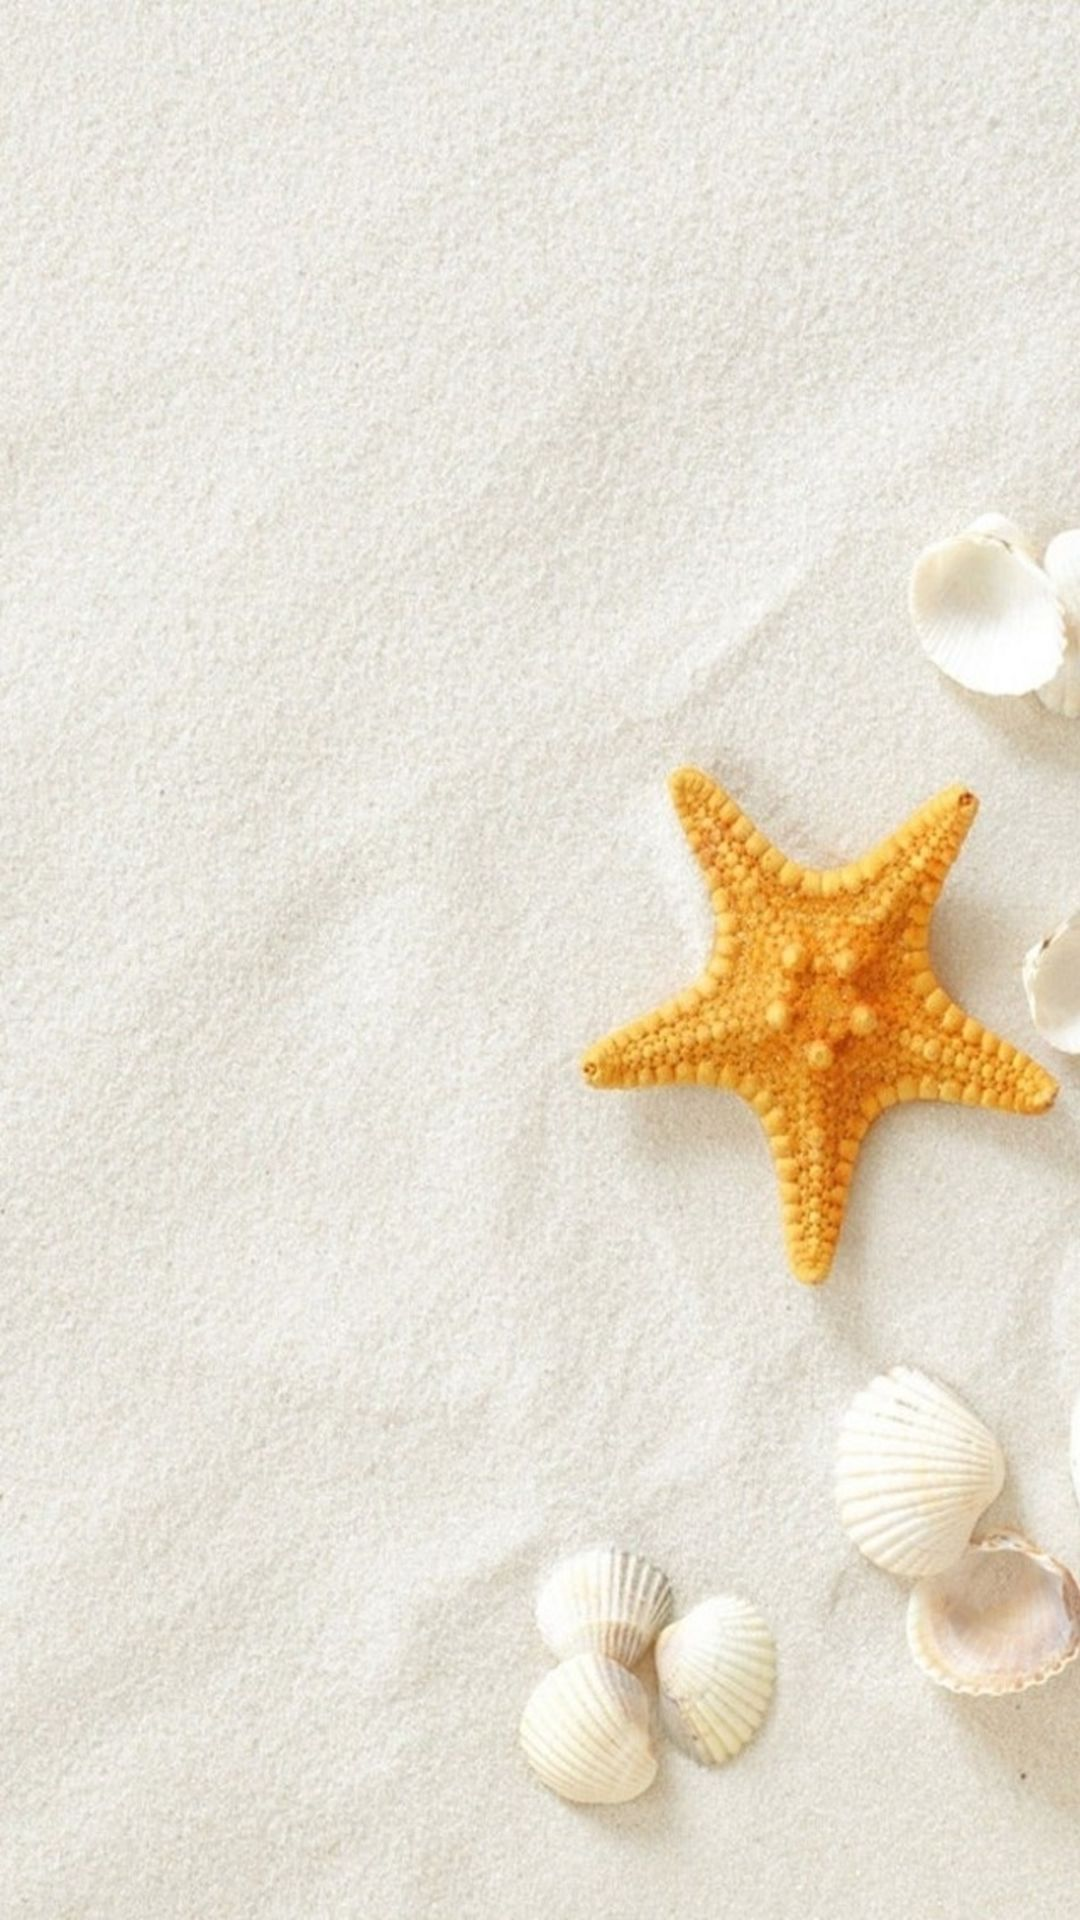 Pure Seaside Beach Starfish Seashell IPhone 6 Plus Wallpaper